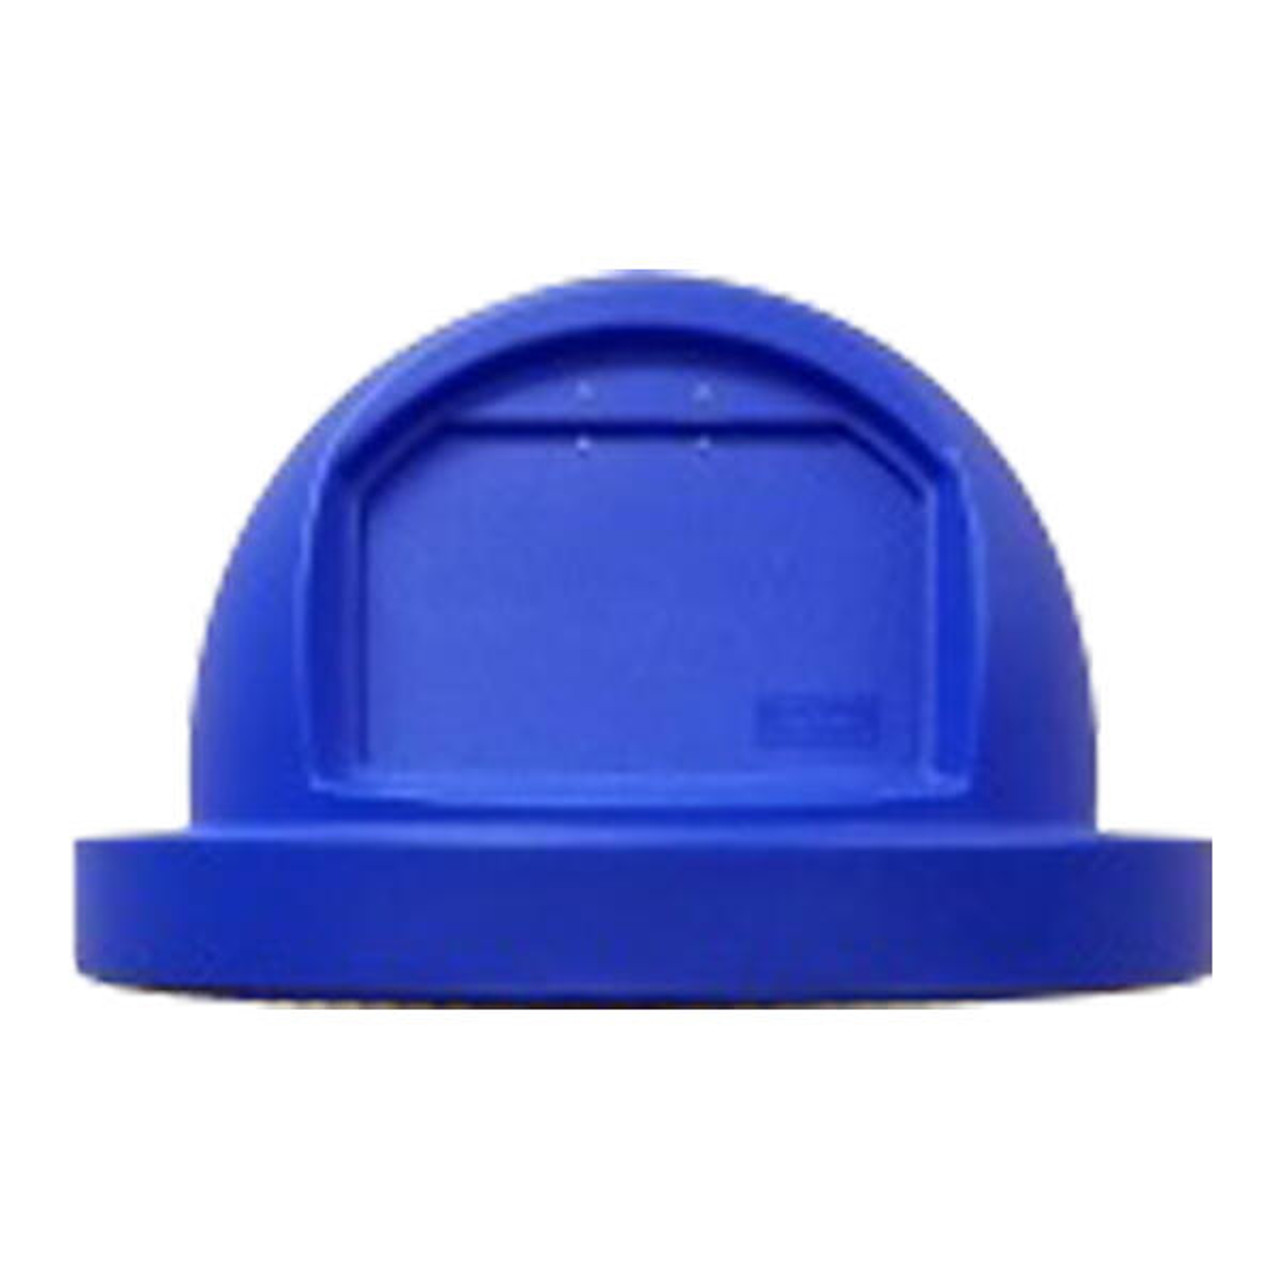 Push Door Trash Can Lid for 55 Gallon Drums and MF3083 BLUE